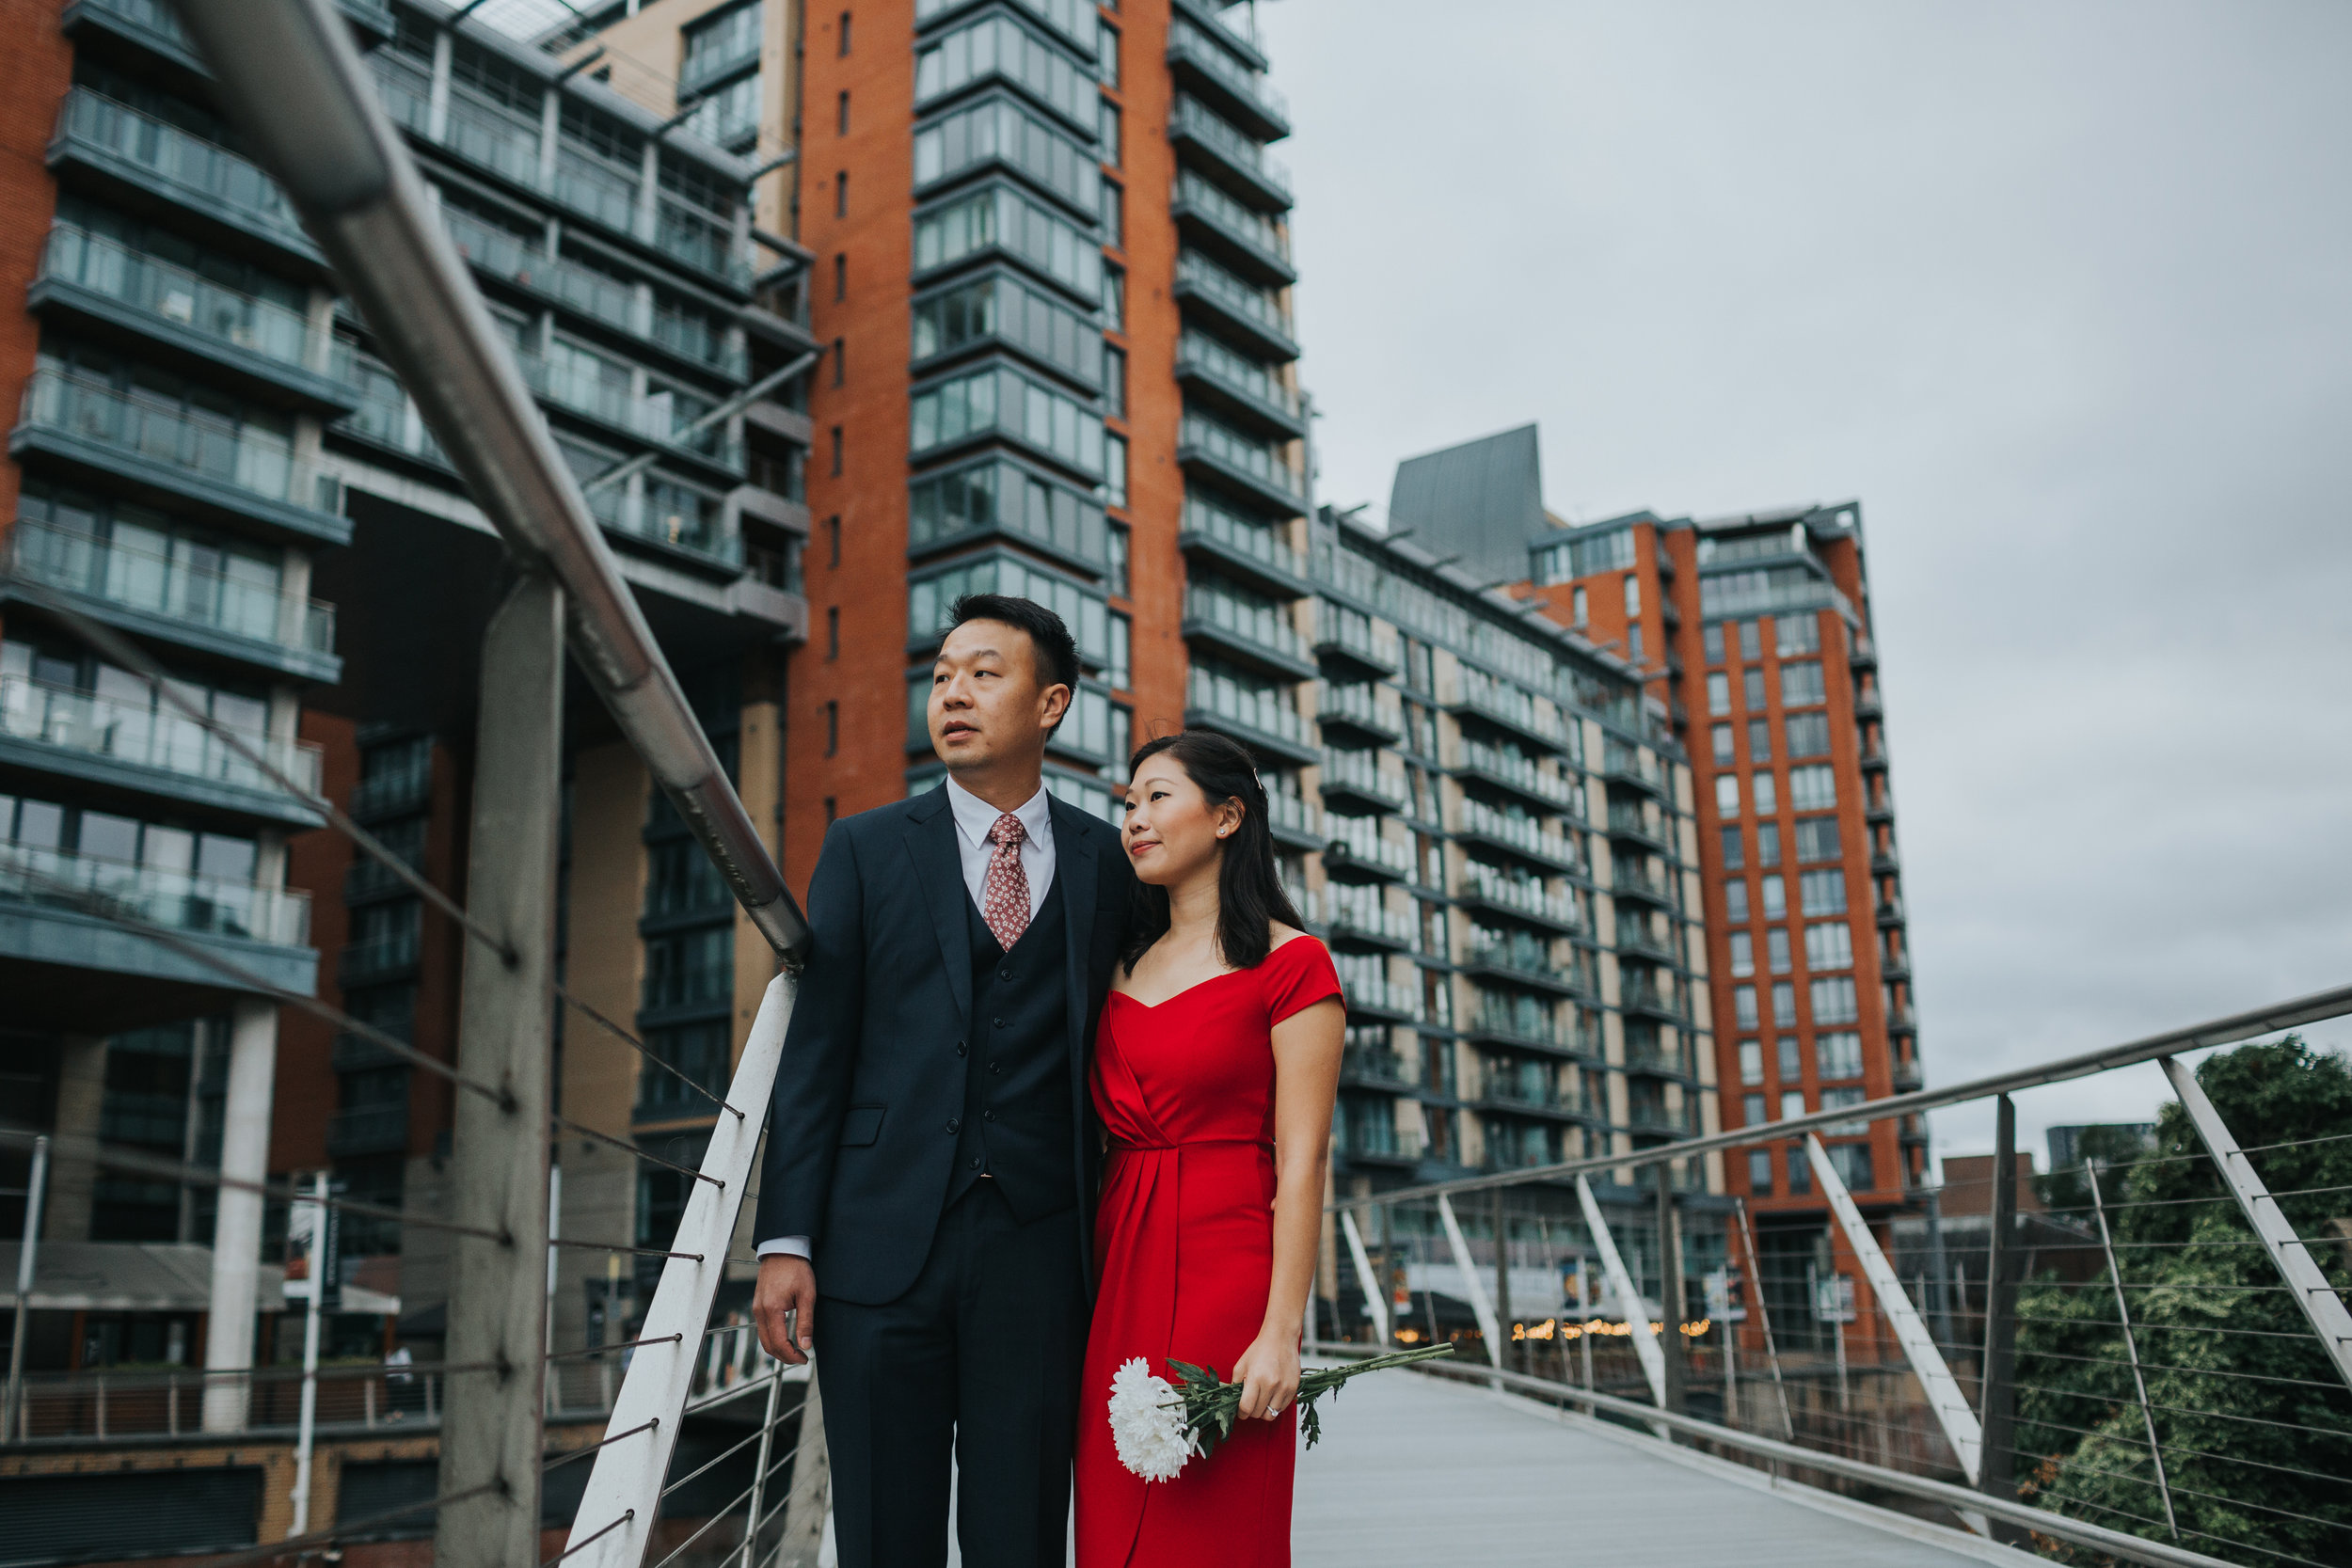 Couple stand outside Max's old University Halls on a bridge looking off into the distance.